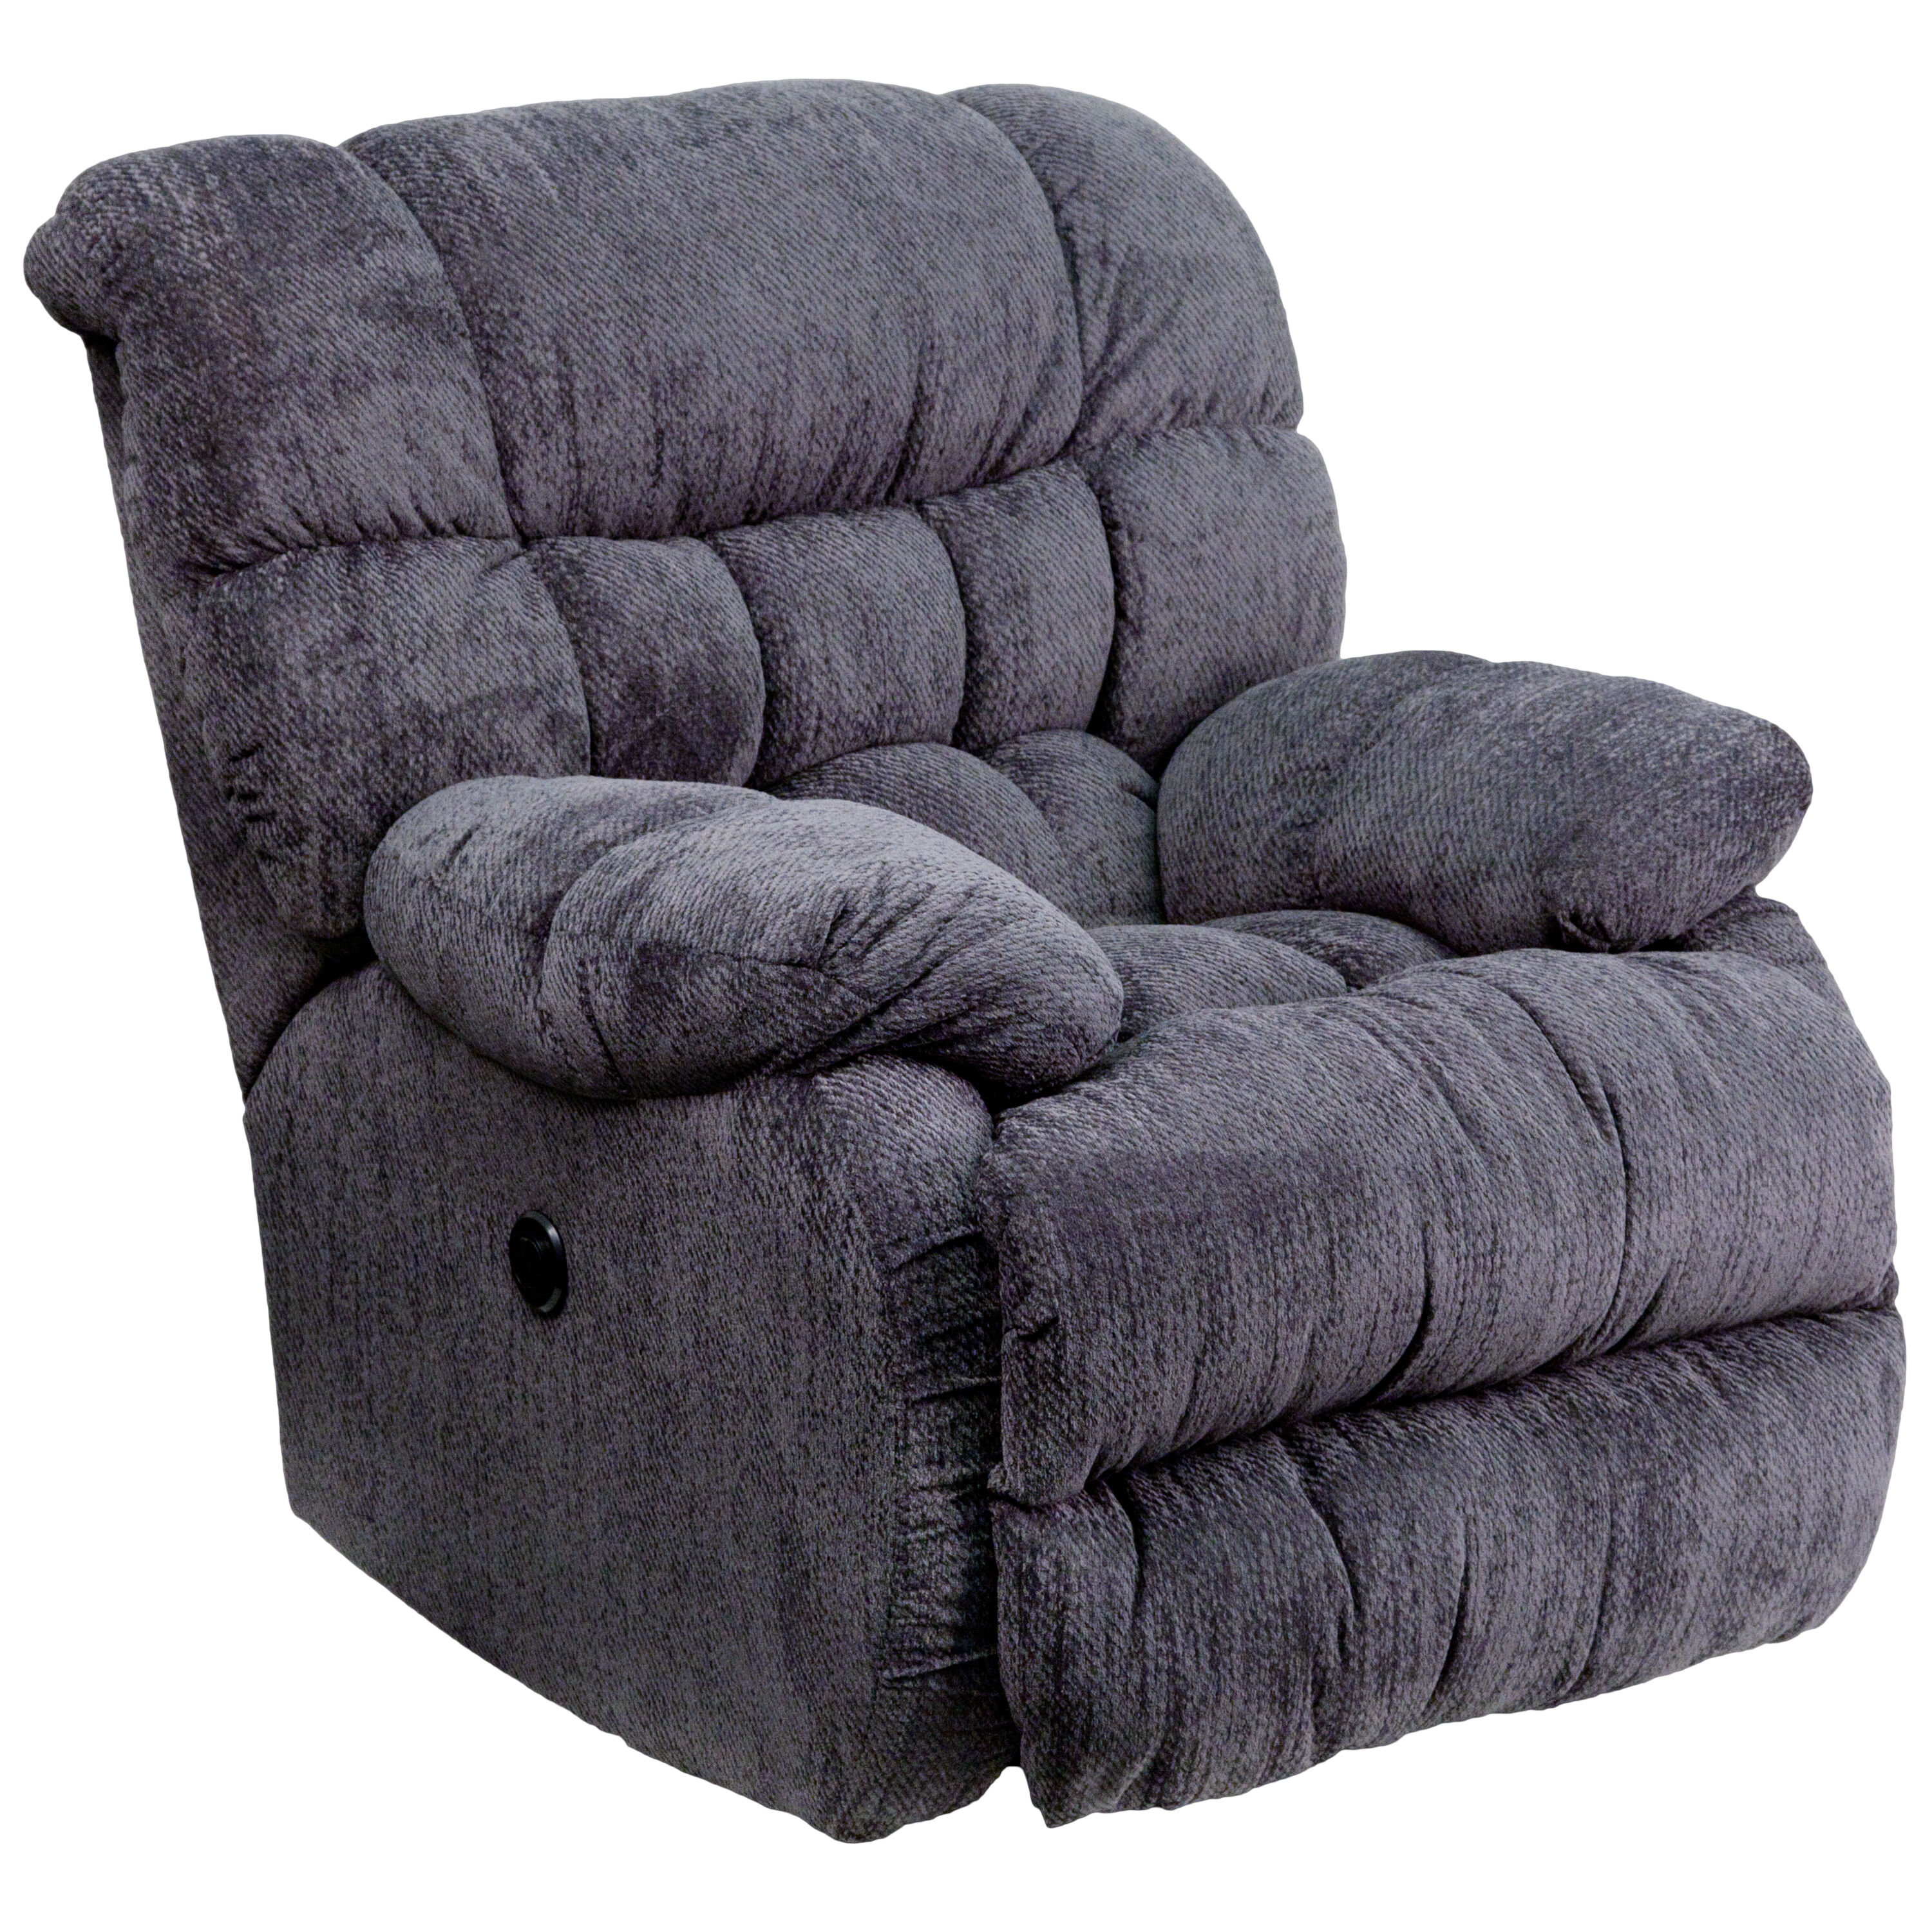 push button recliner chairs unfinished ladder back flash furniture contemporary columbia indigo blue